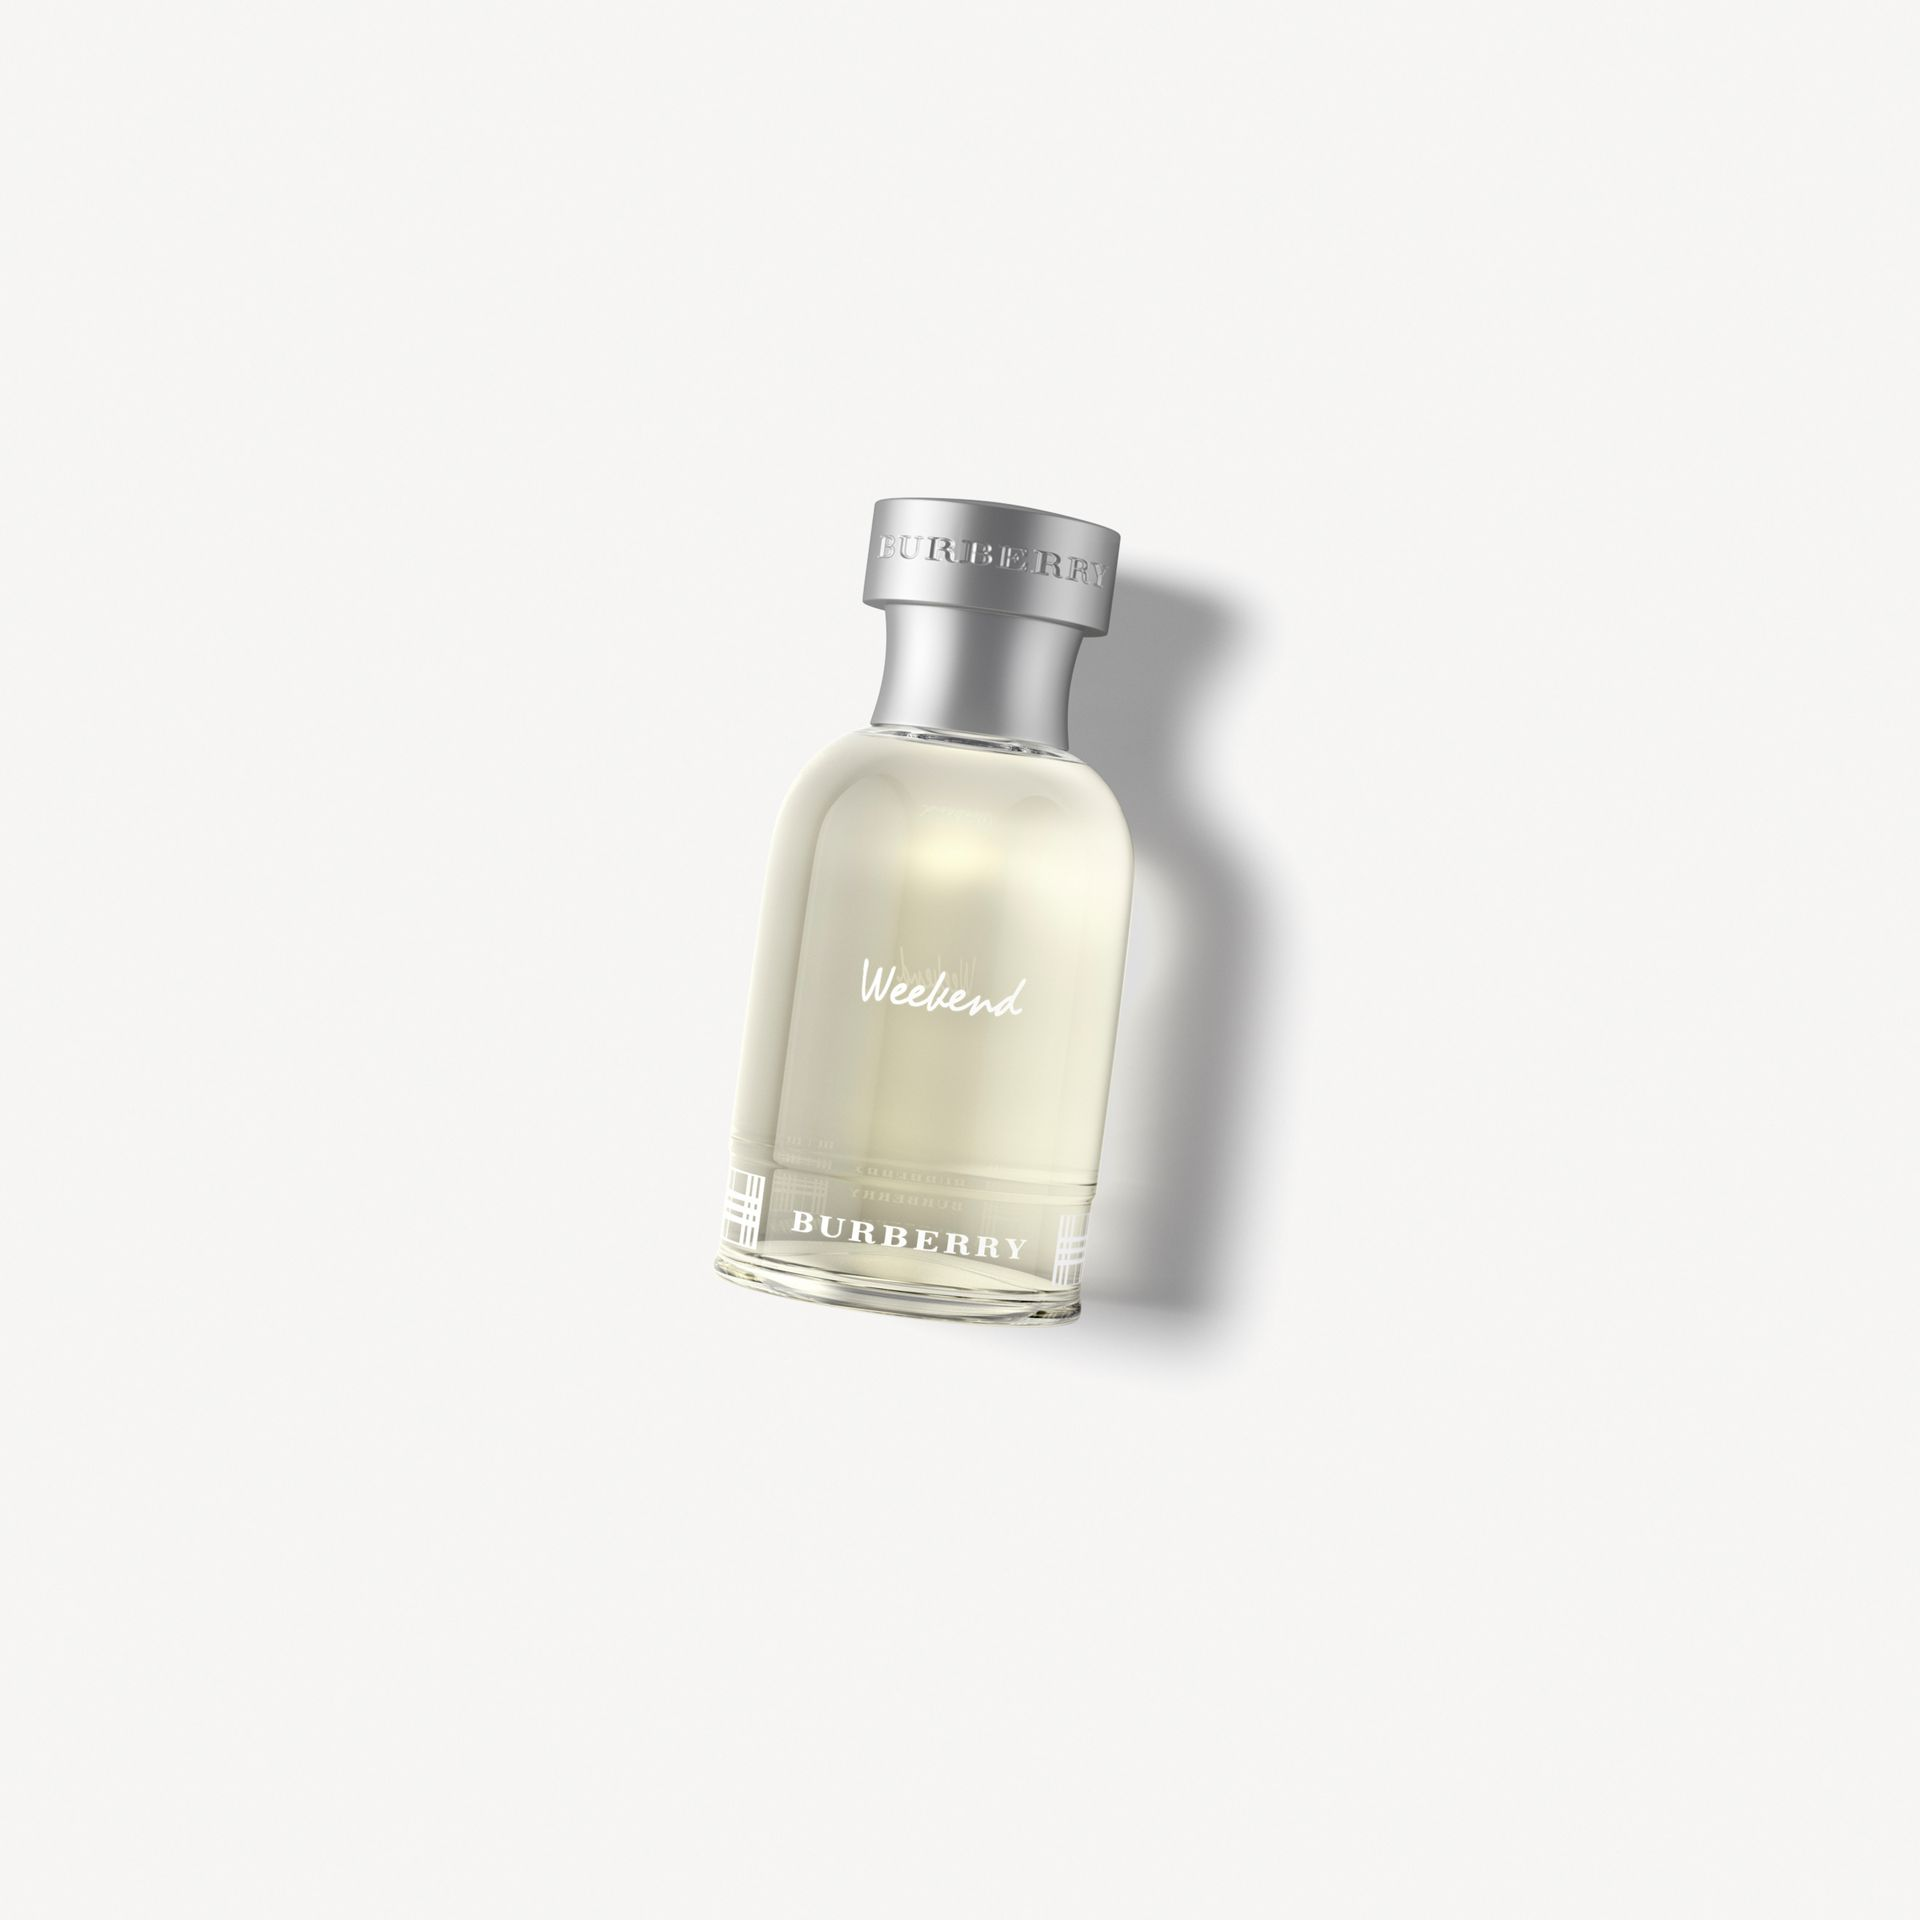 Burberry Weekend Eau de Toilette 50 ml - Uomo | Burberry - immagine della galleria 1